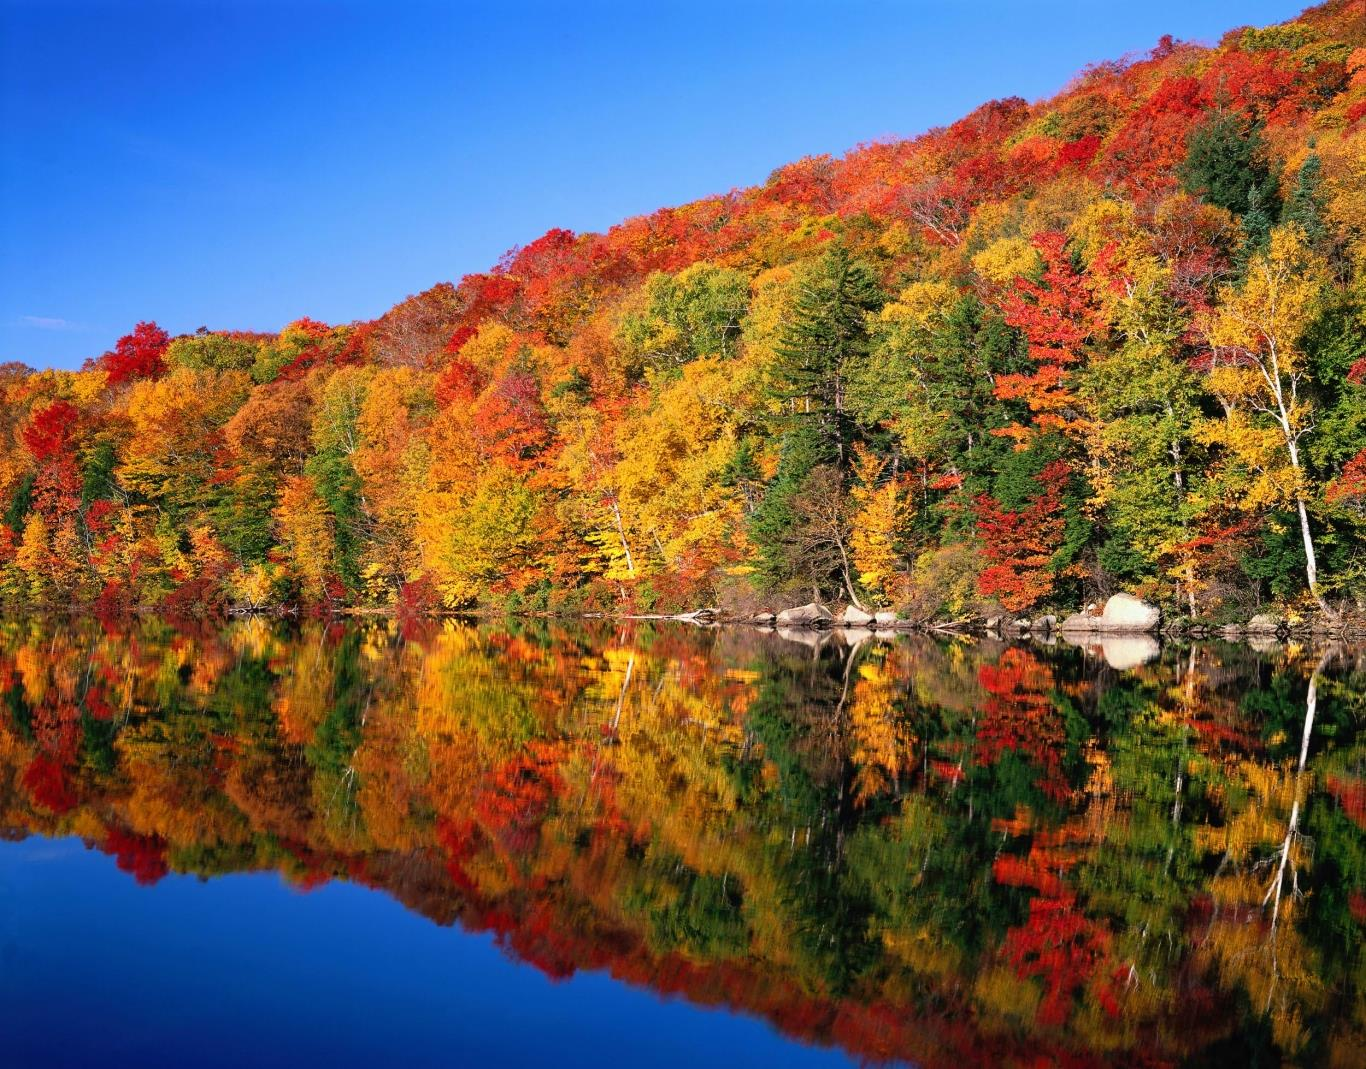 Leaf color in cold areas changes with temperature